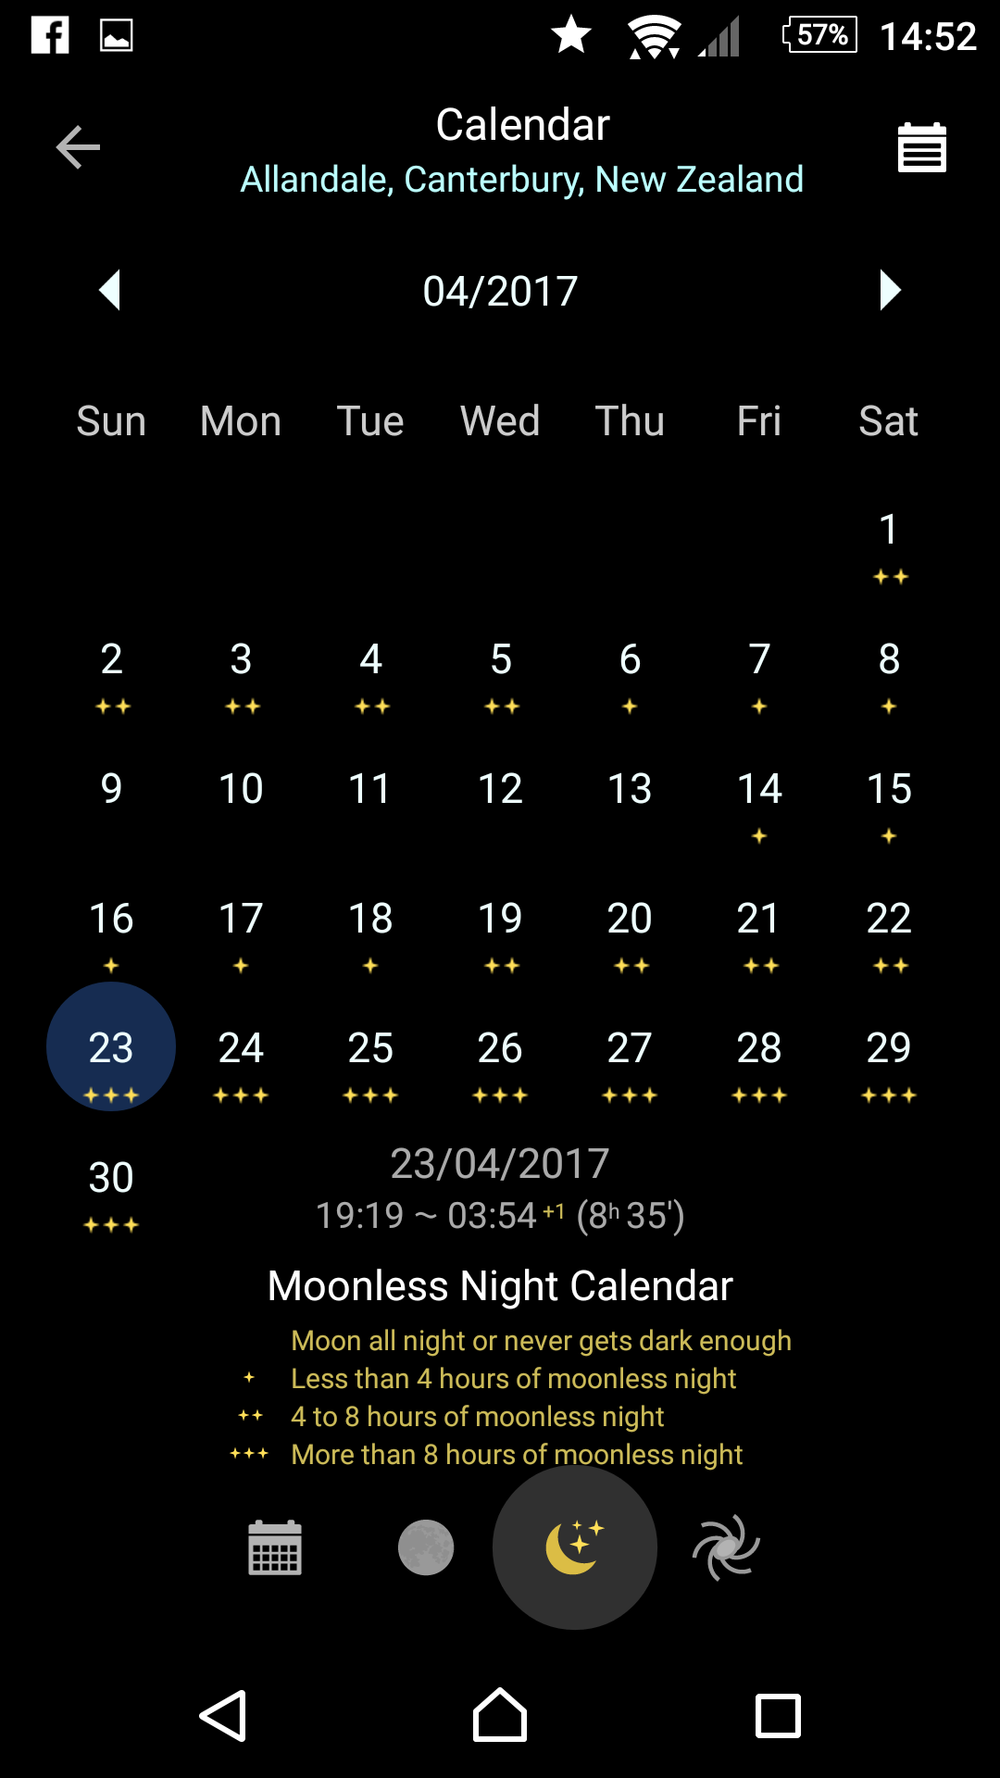 moonlight calendar feature